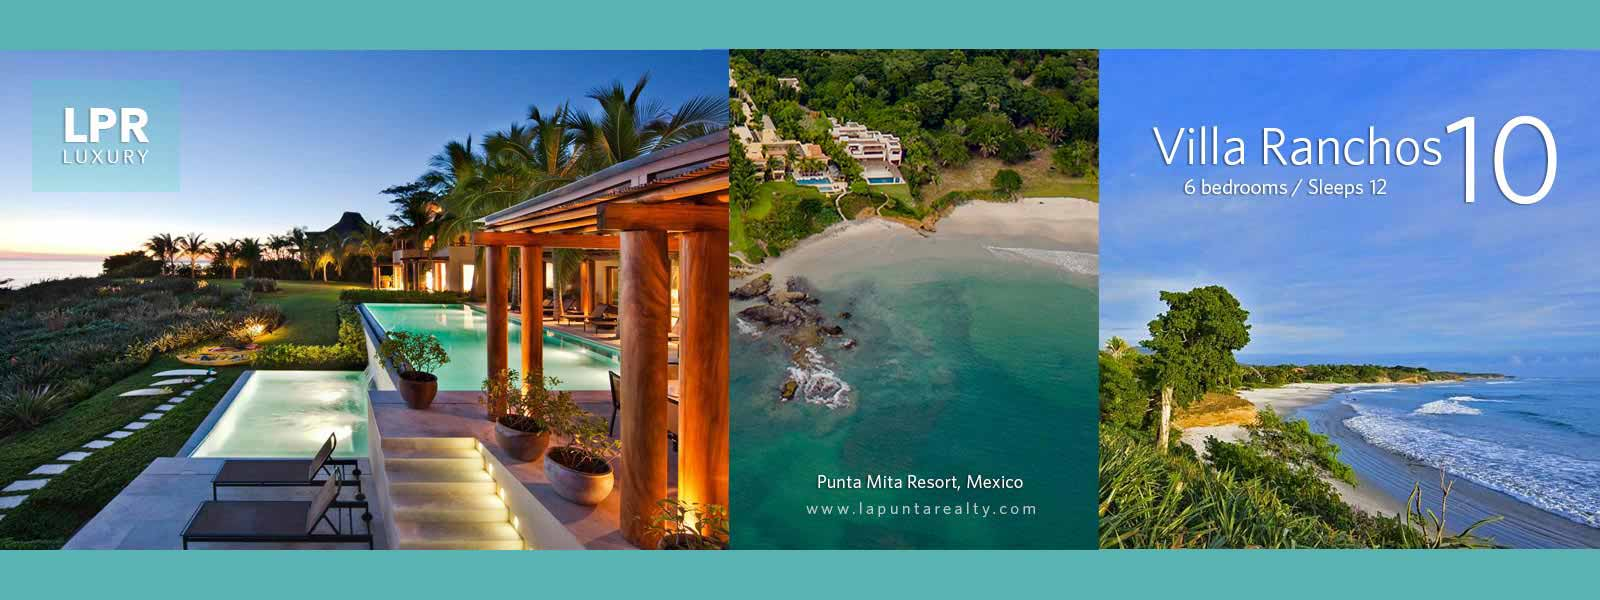 Villa Ranchos 10 - Luxury Punta Mita Rentals - Vacation Villas and Estates